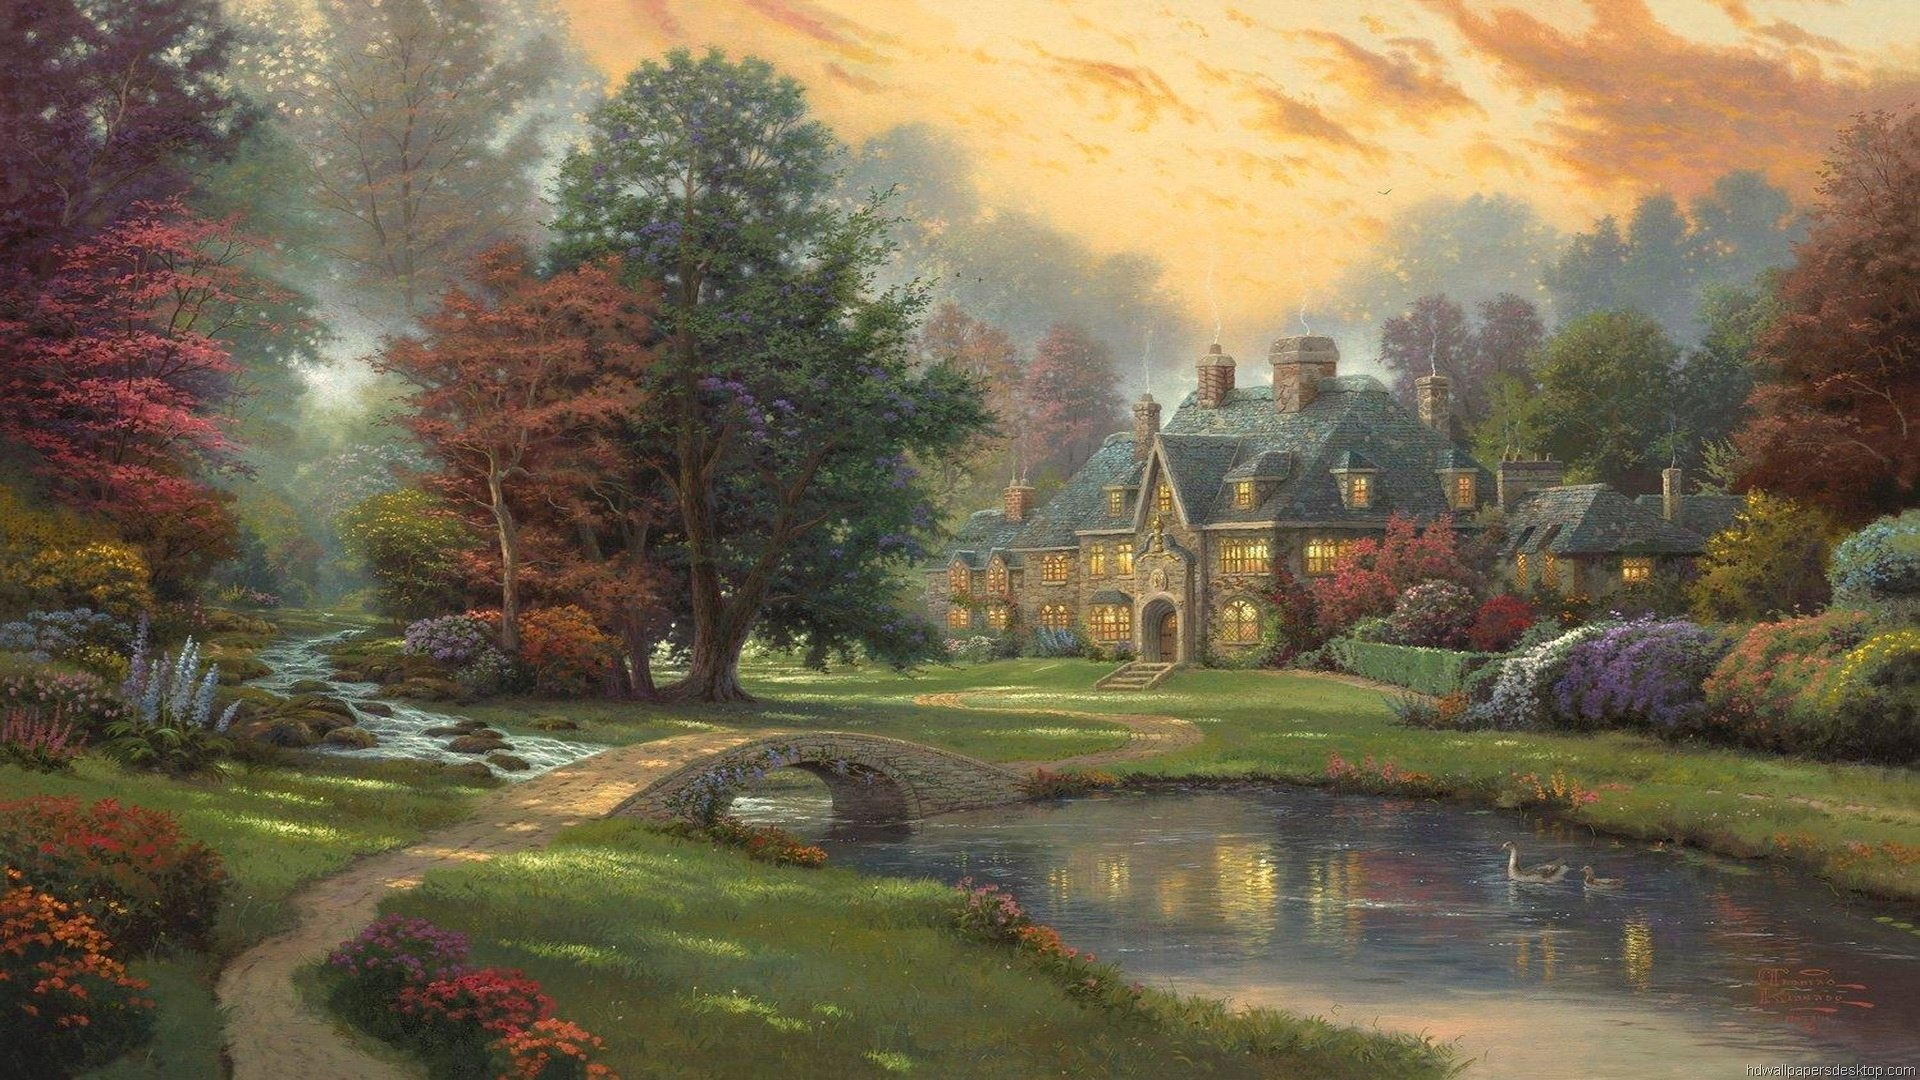 Wallpapers famous painting artist painter brush oil on canvas awesome 1920x1080